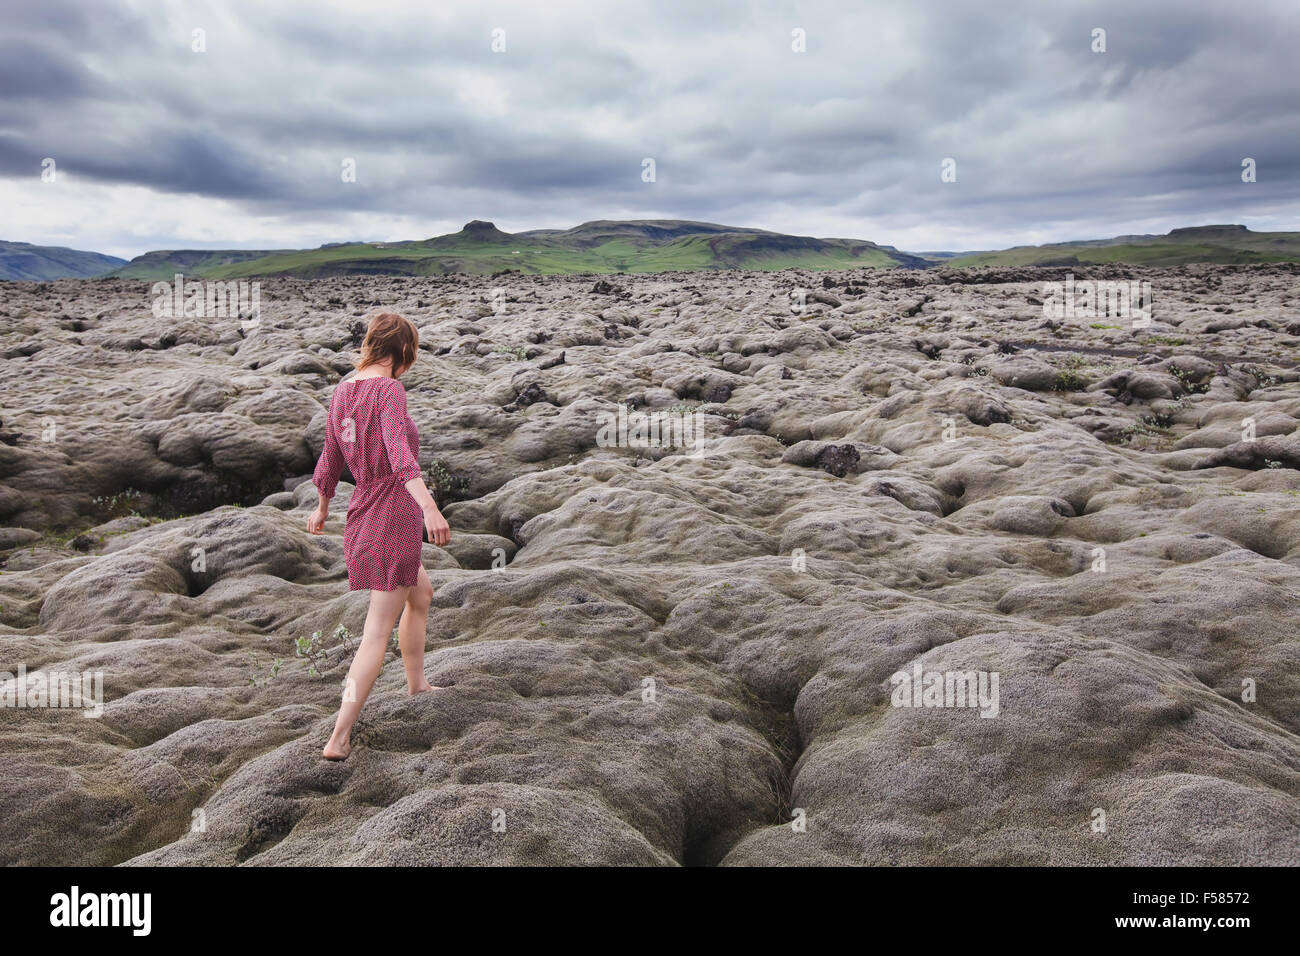 fashion woman walking barefoot in lava field in Iceland - Stock Image